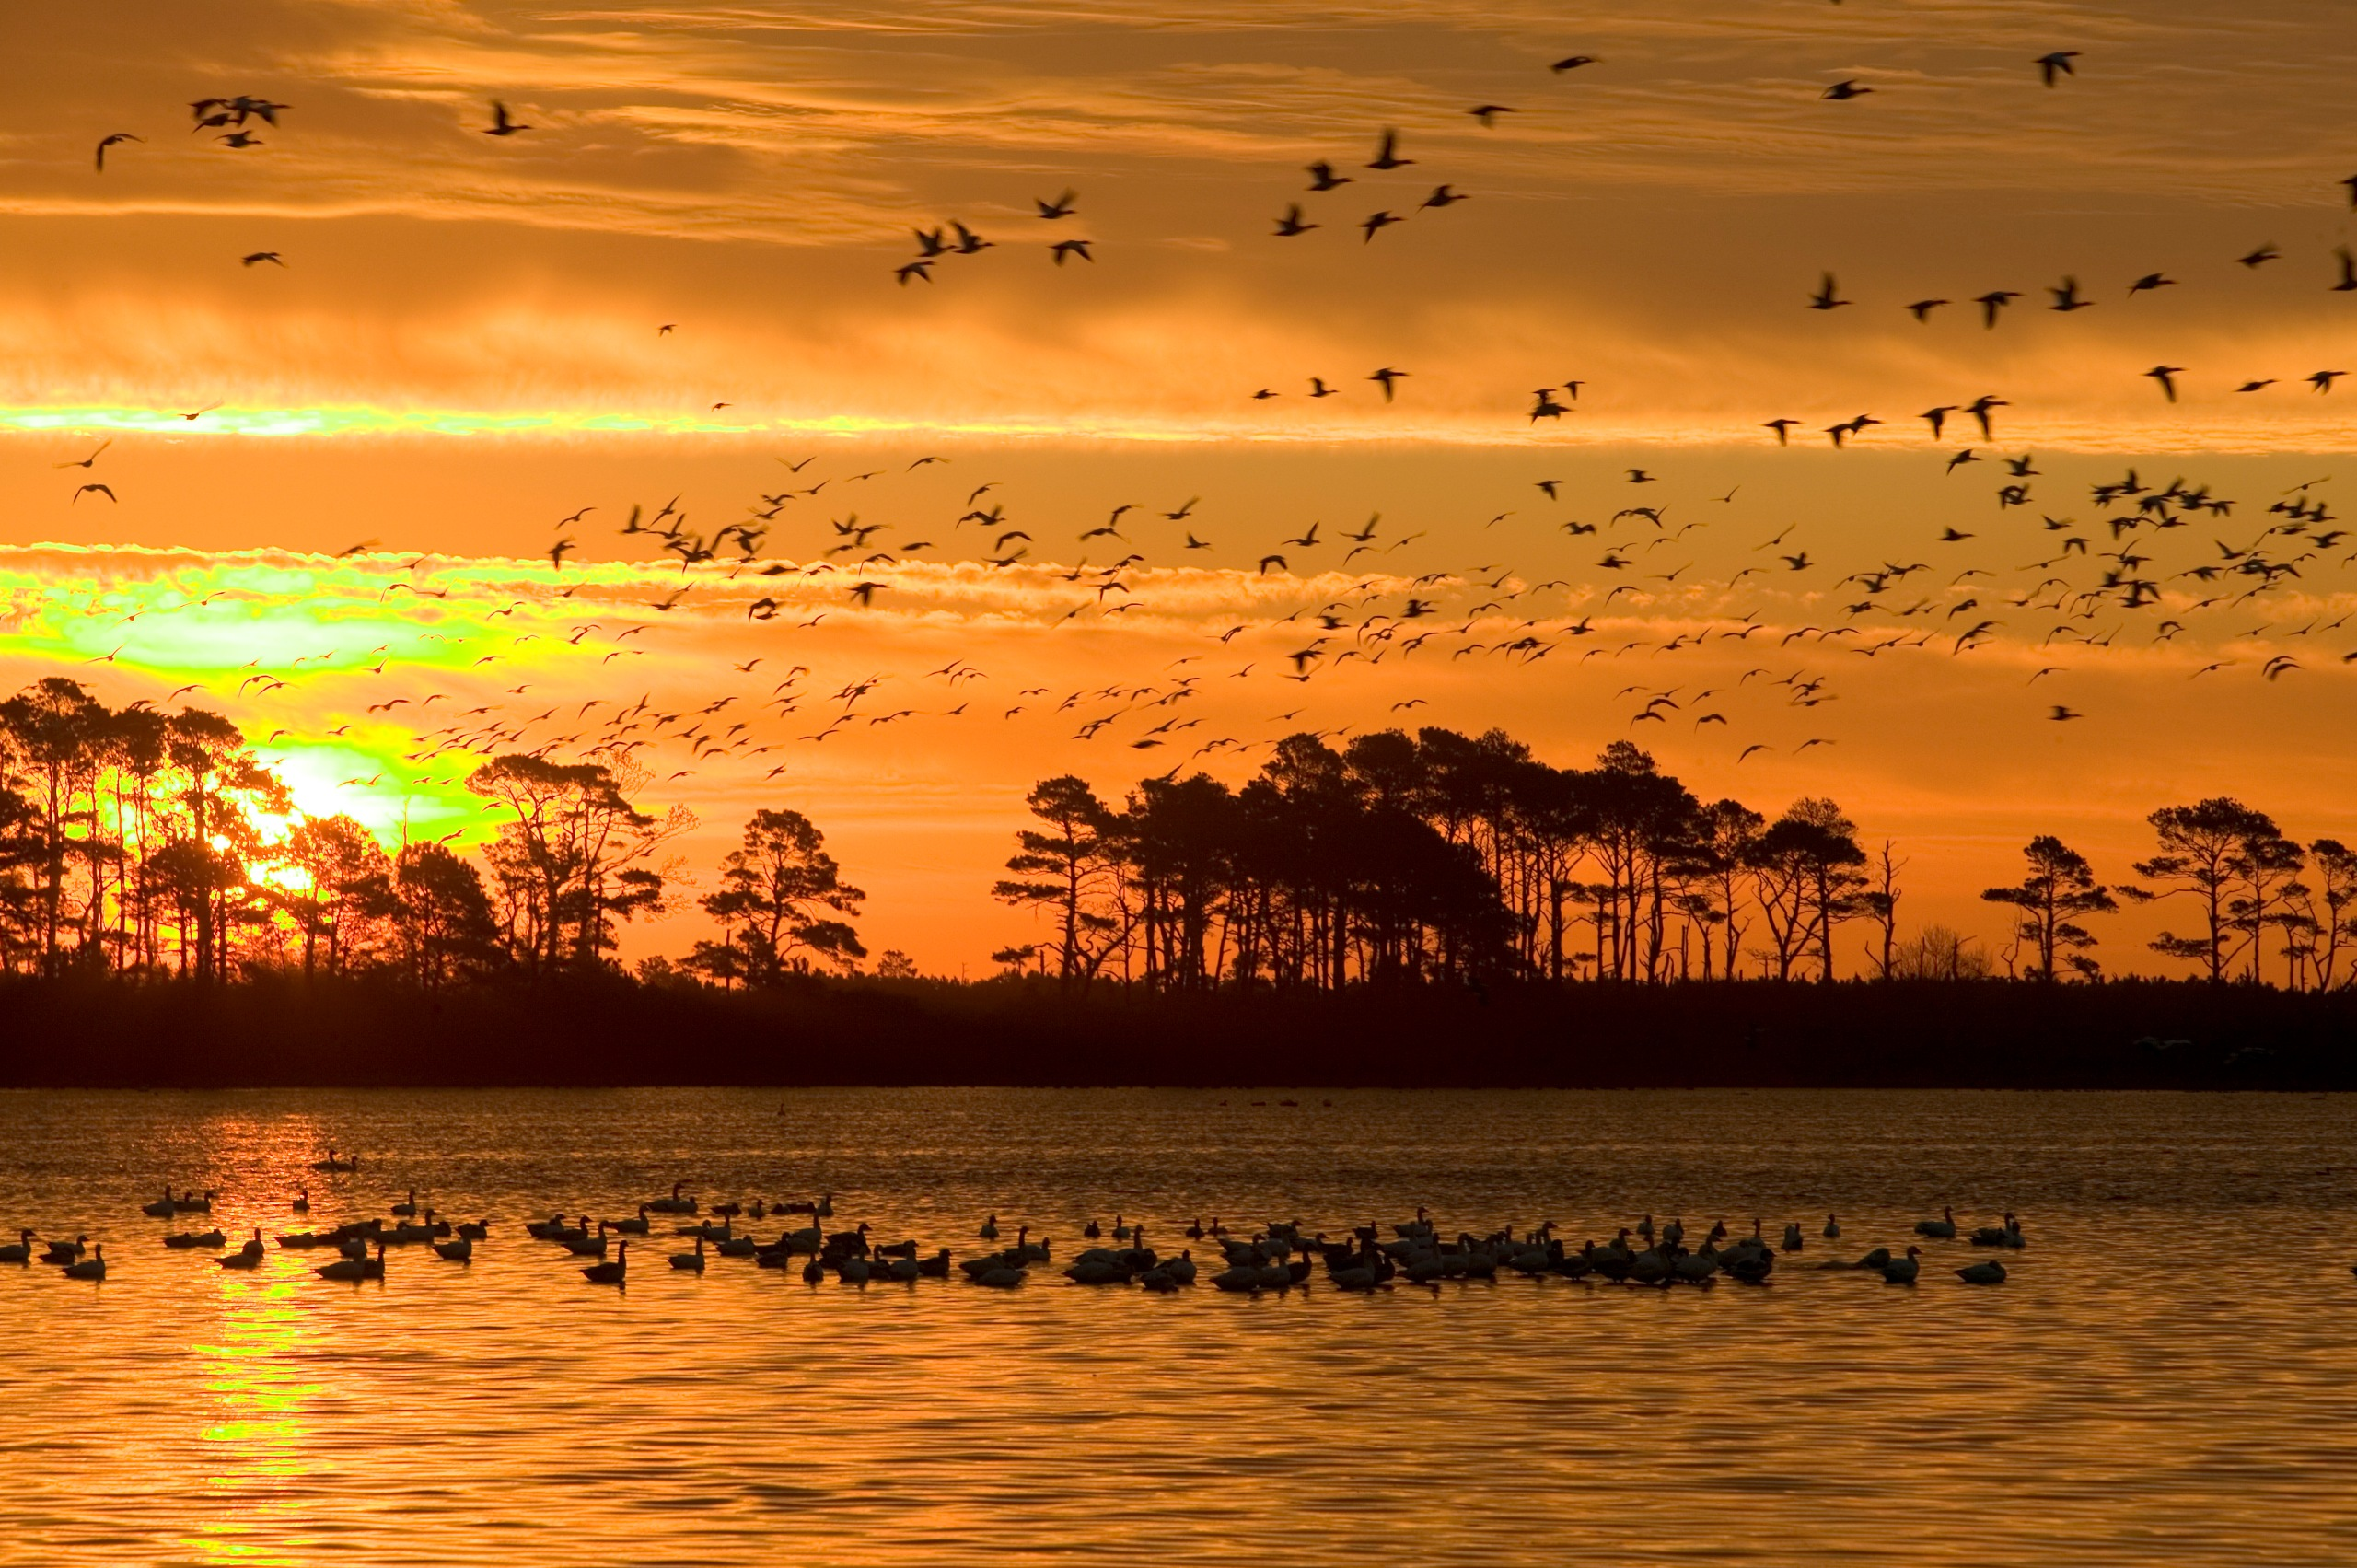 Sunset at Chincoteague National Wildlife Refuge. Credit: Steve Hillenbrand